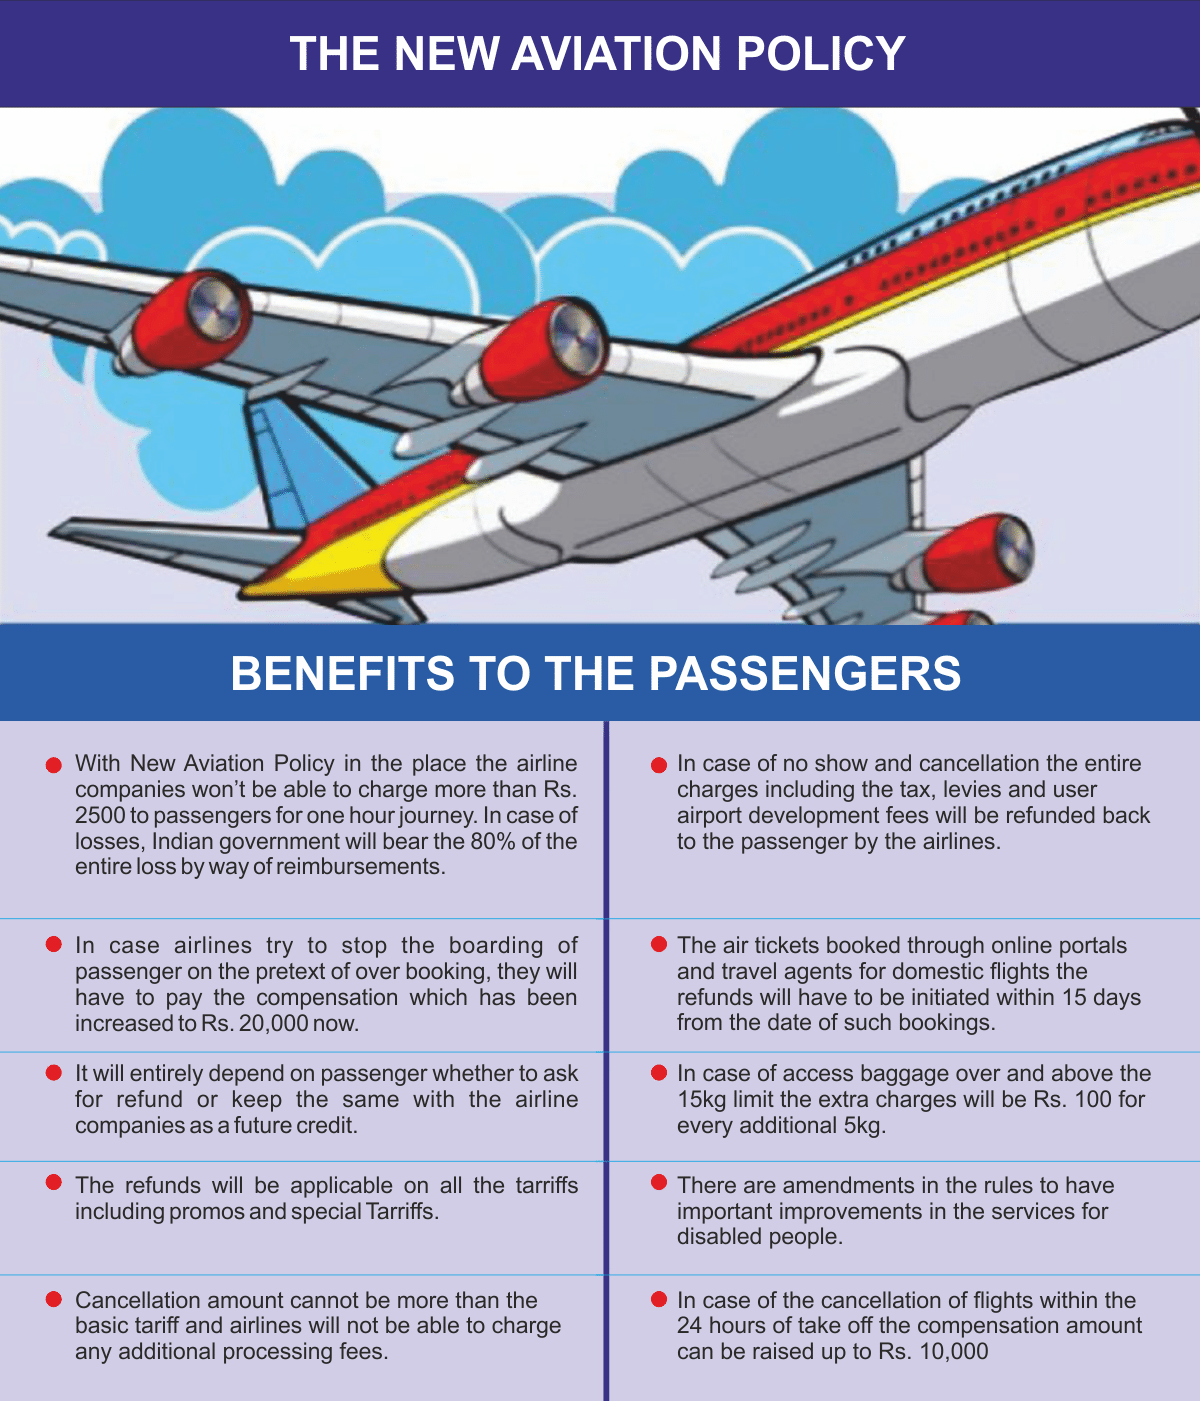 The New Aviation Policy